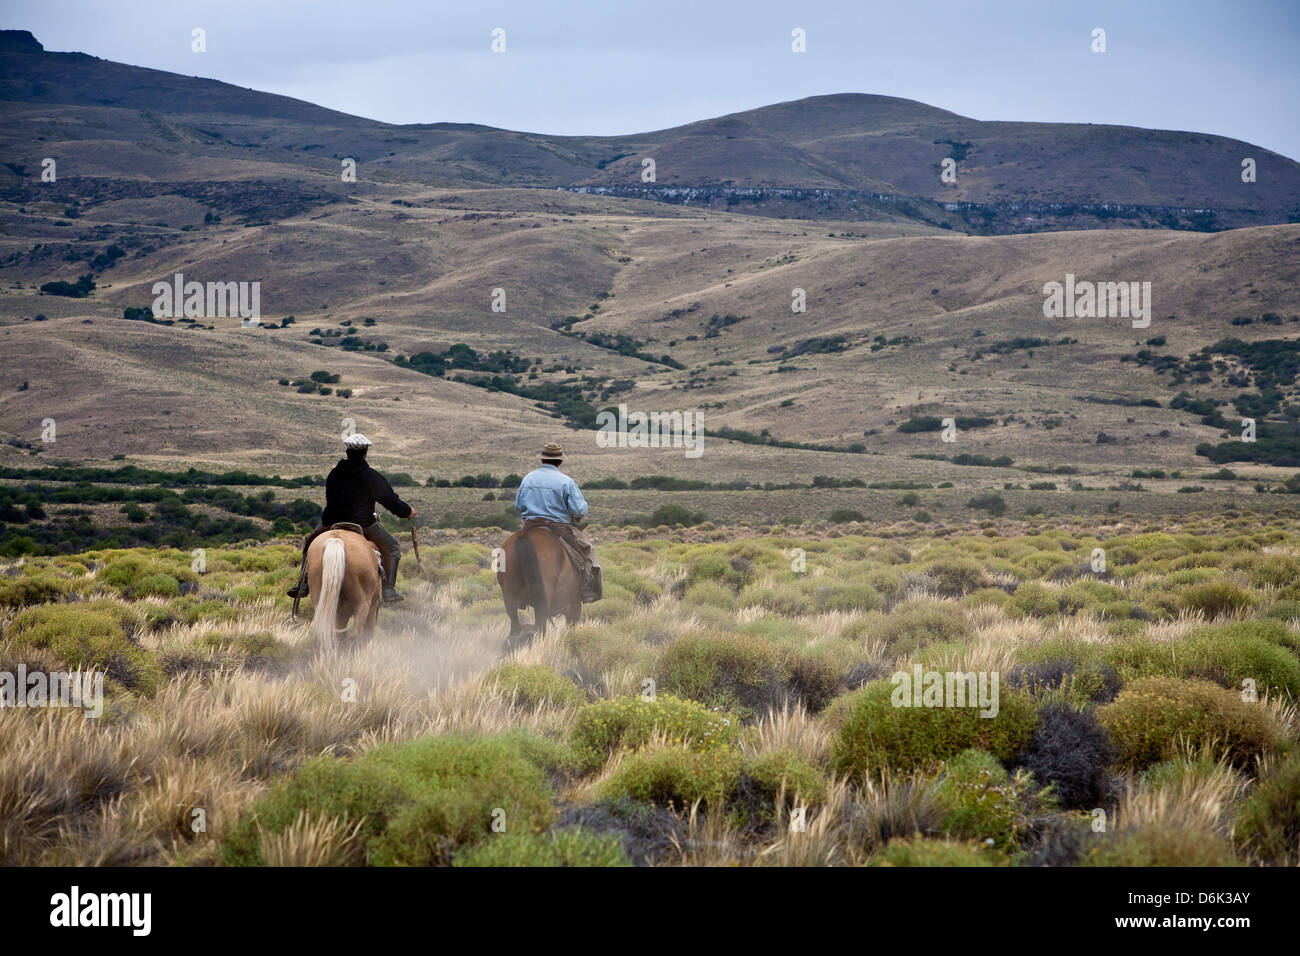 Gauchos riding horses, Patagonia, Argentina, South America - Stock Image